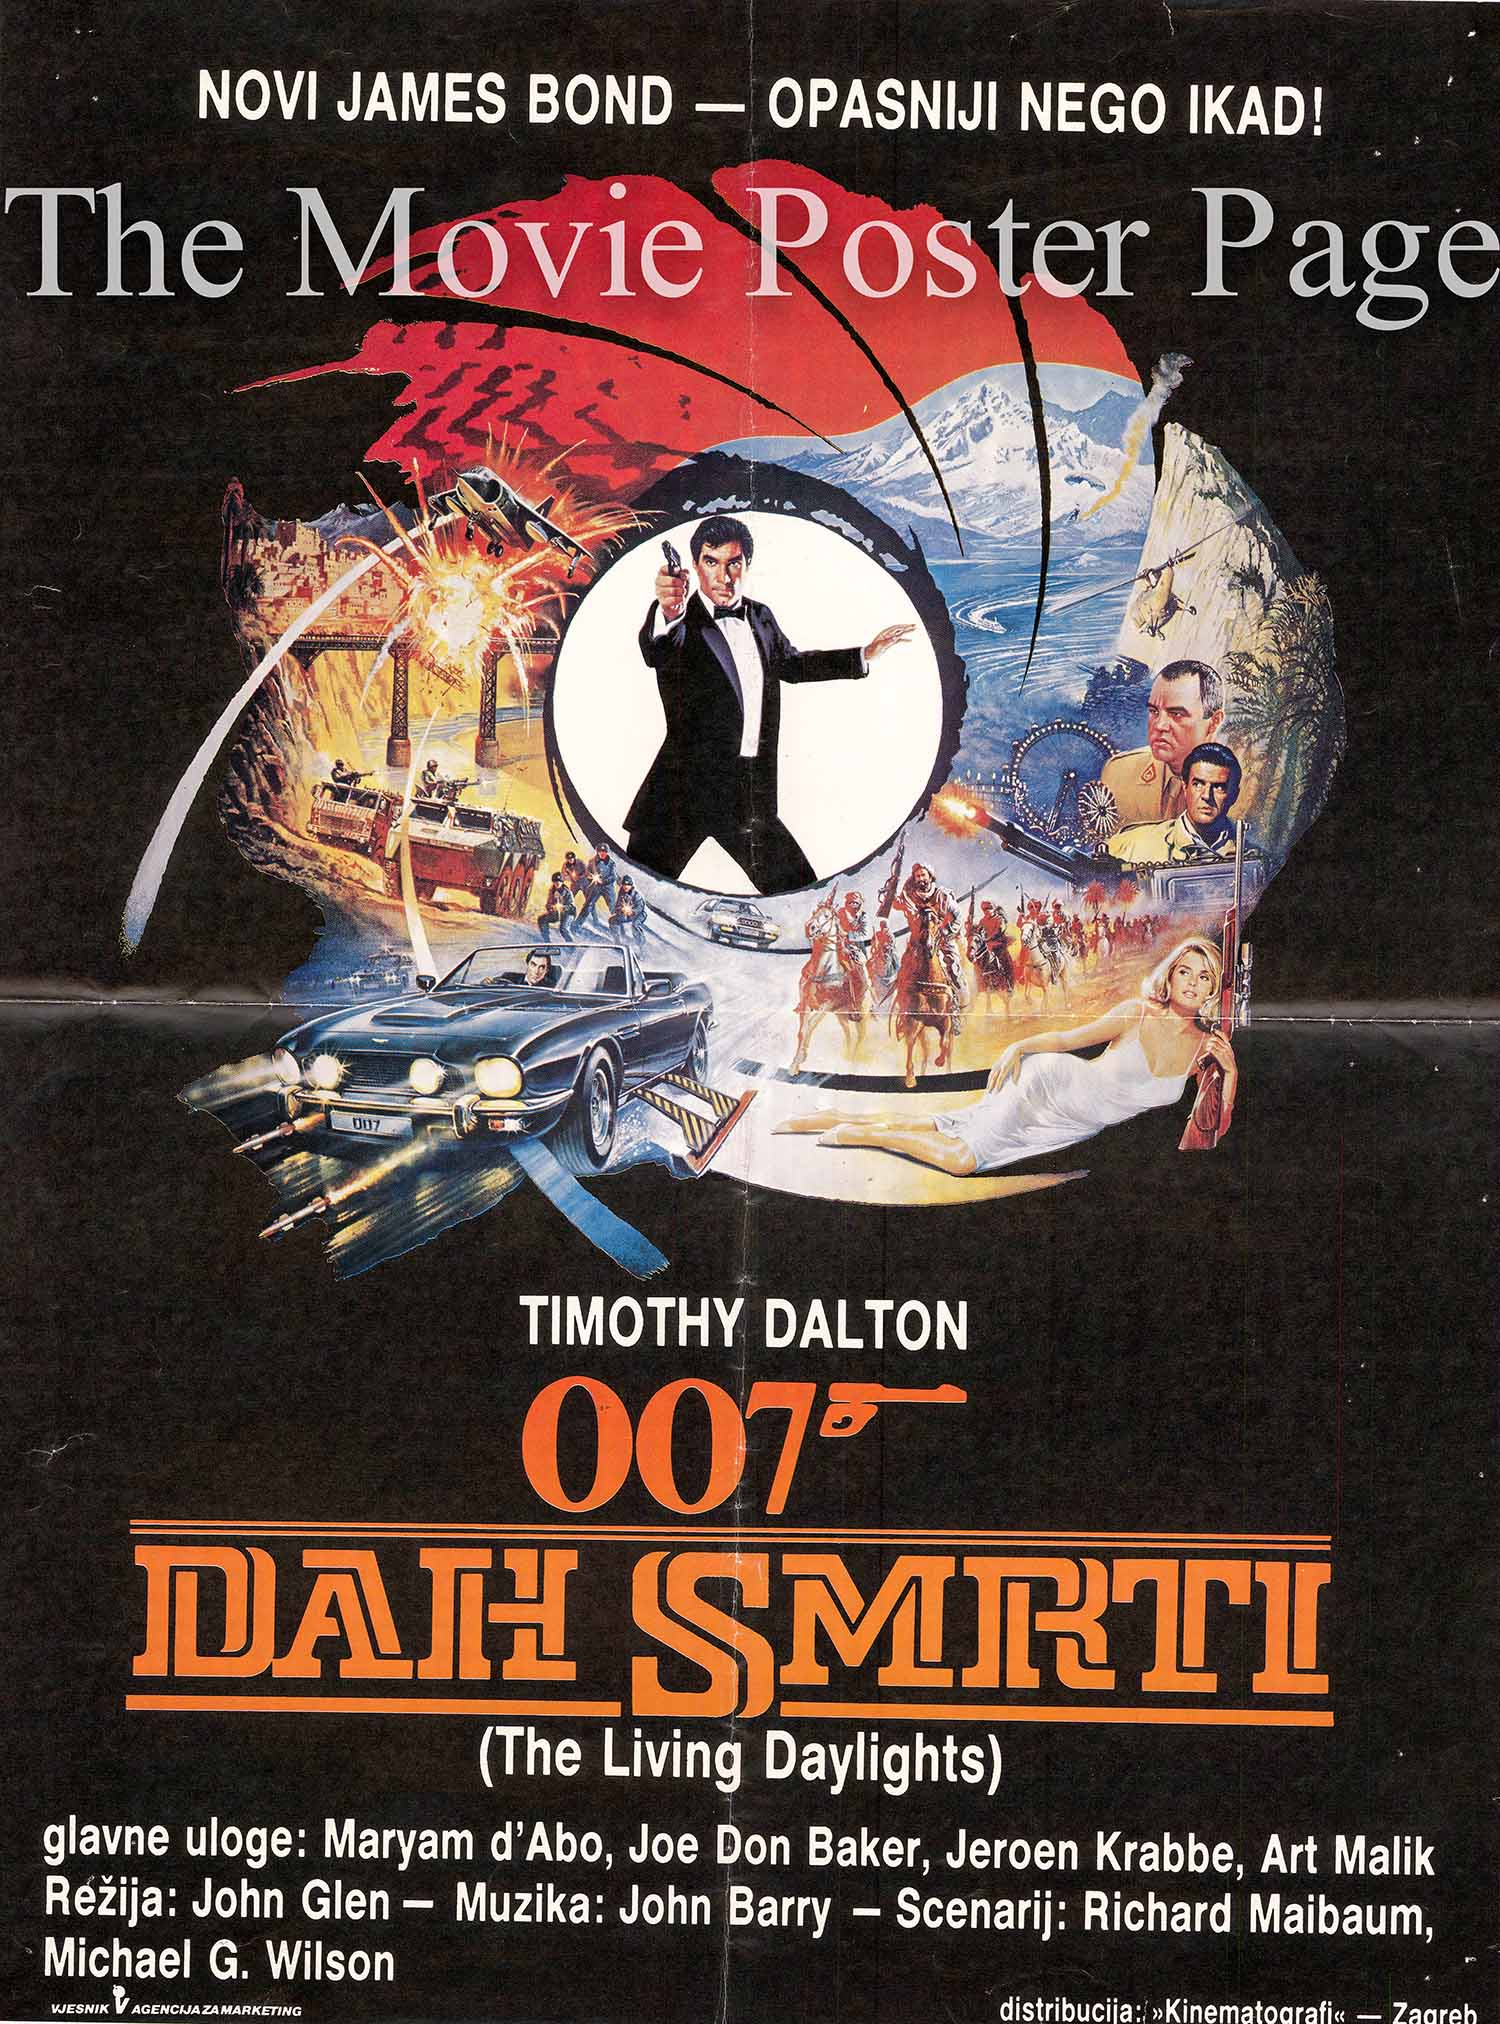 Pictured is as Yugoslavian promotional poster for the 1987 John Glen film The Living Daylights starring Timothy Dalton as James Bond.